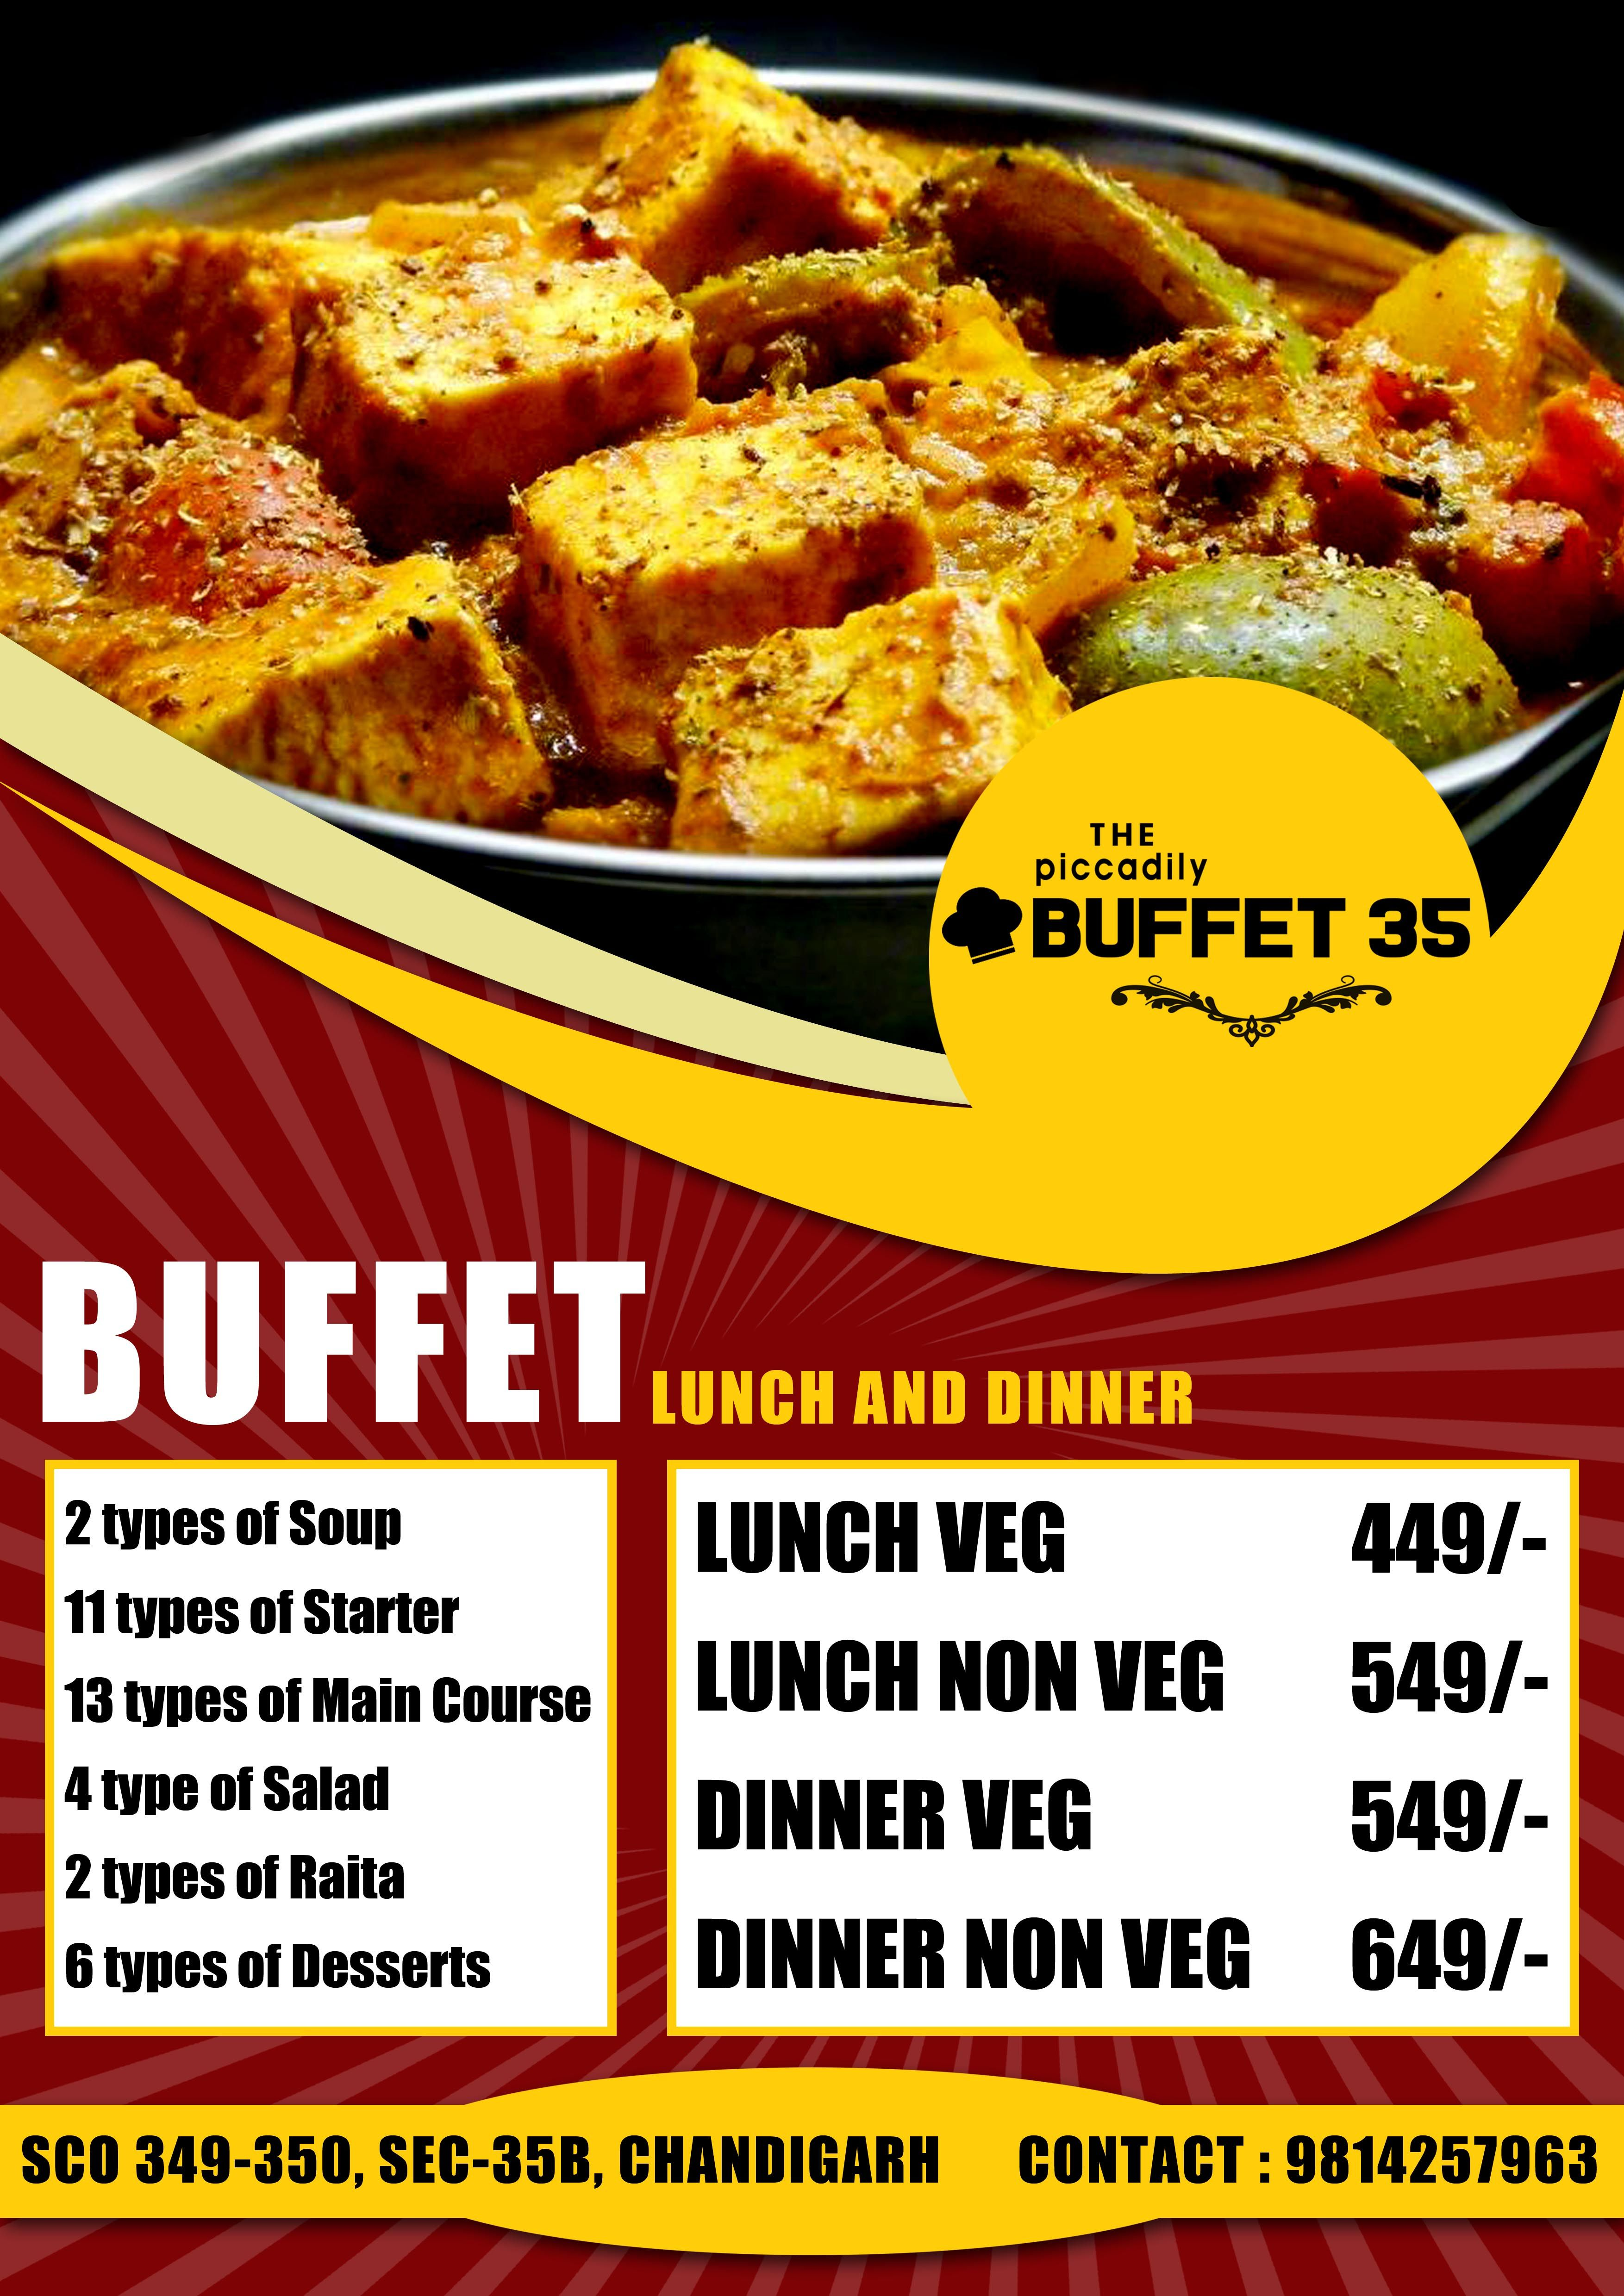 #ShreeGMediaWorks #RestaurentGraphics #Food #LiveGrilling #BArbeque #FoodDesigns #FoodLovers #Buffet #BBQ #Advertisements #CreativeADs #Brands #ThePiccadily #Buffet35 for any query contact us at: +91-7087969924 or +91-9988375664